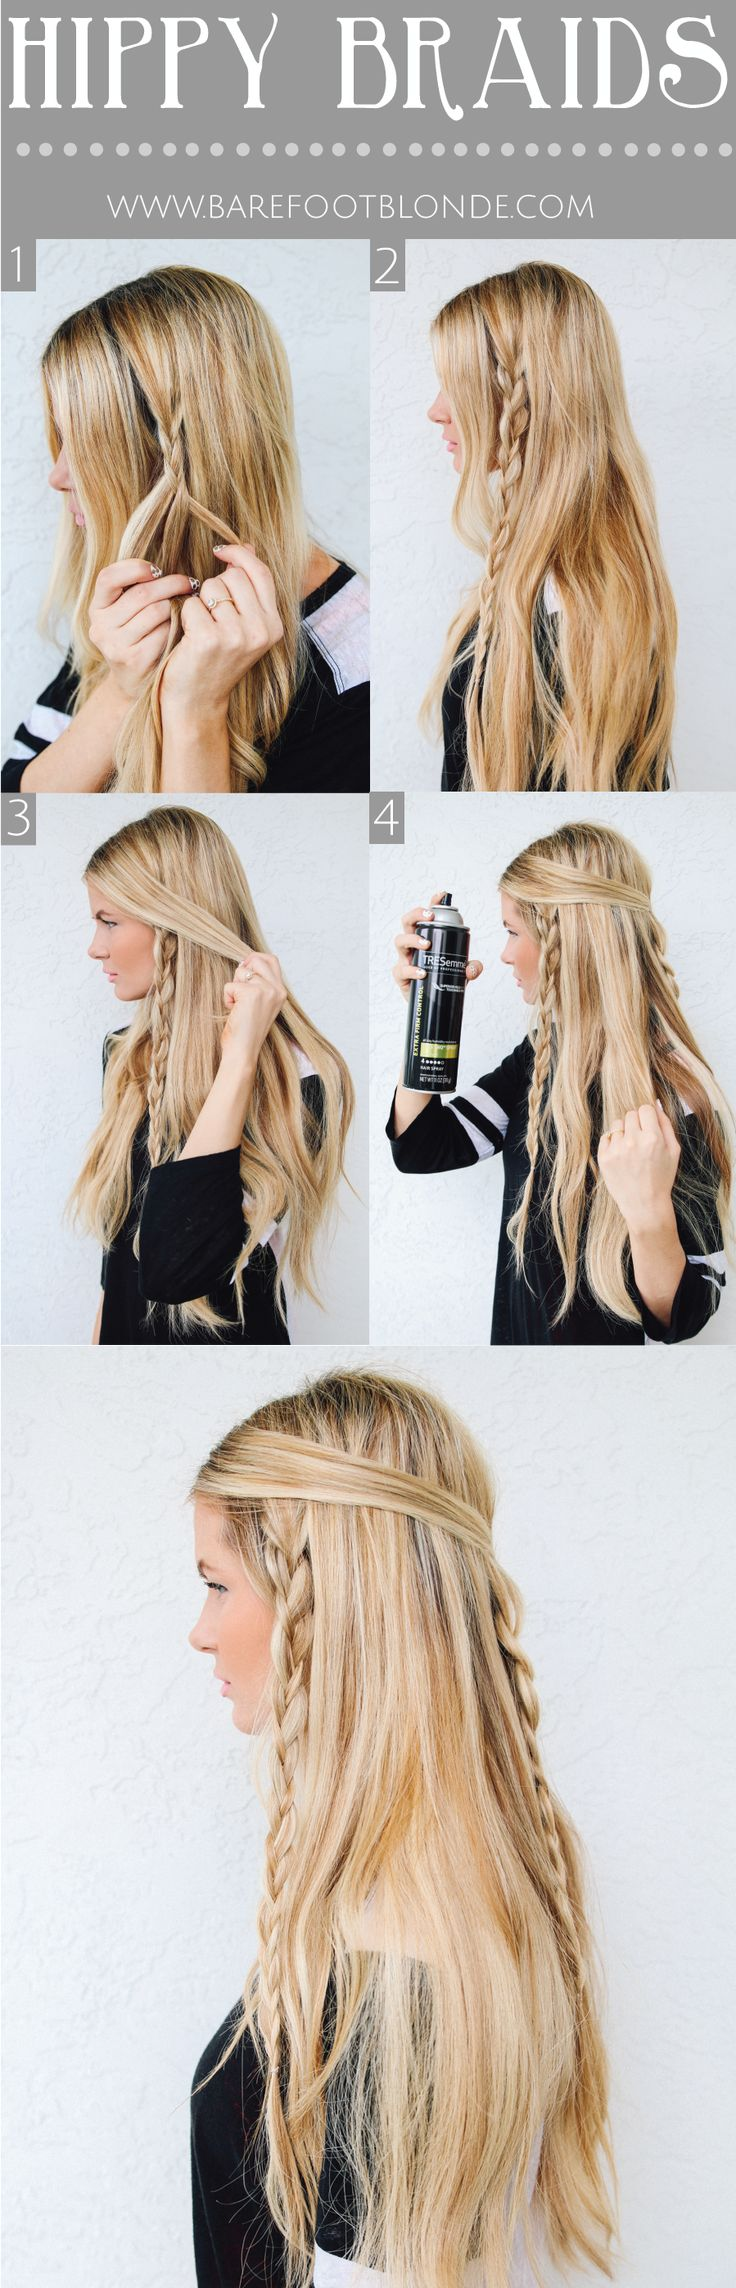 Hippy Braids: Braids Tutorials, Hippie Braids, Cute Hair Style, Barefoot Blonde, Hair Sprays, Long Hair, Hippie Hair Style, Boho Hair Tutorials, Hippie Hairstyles